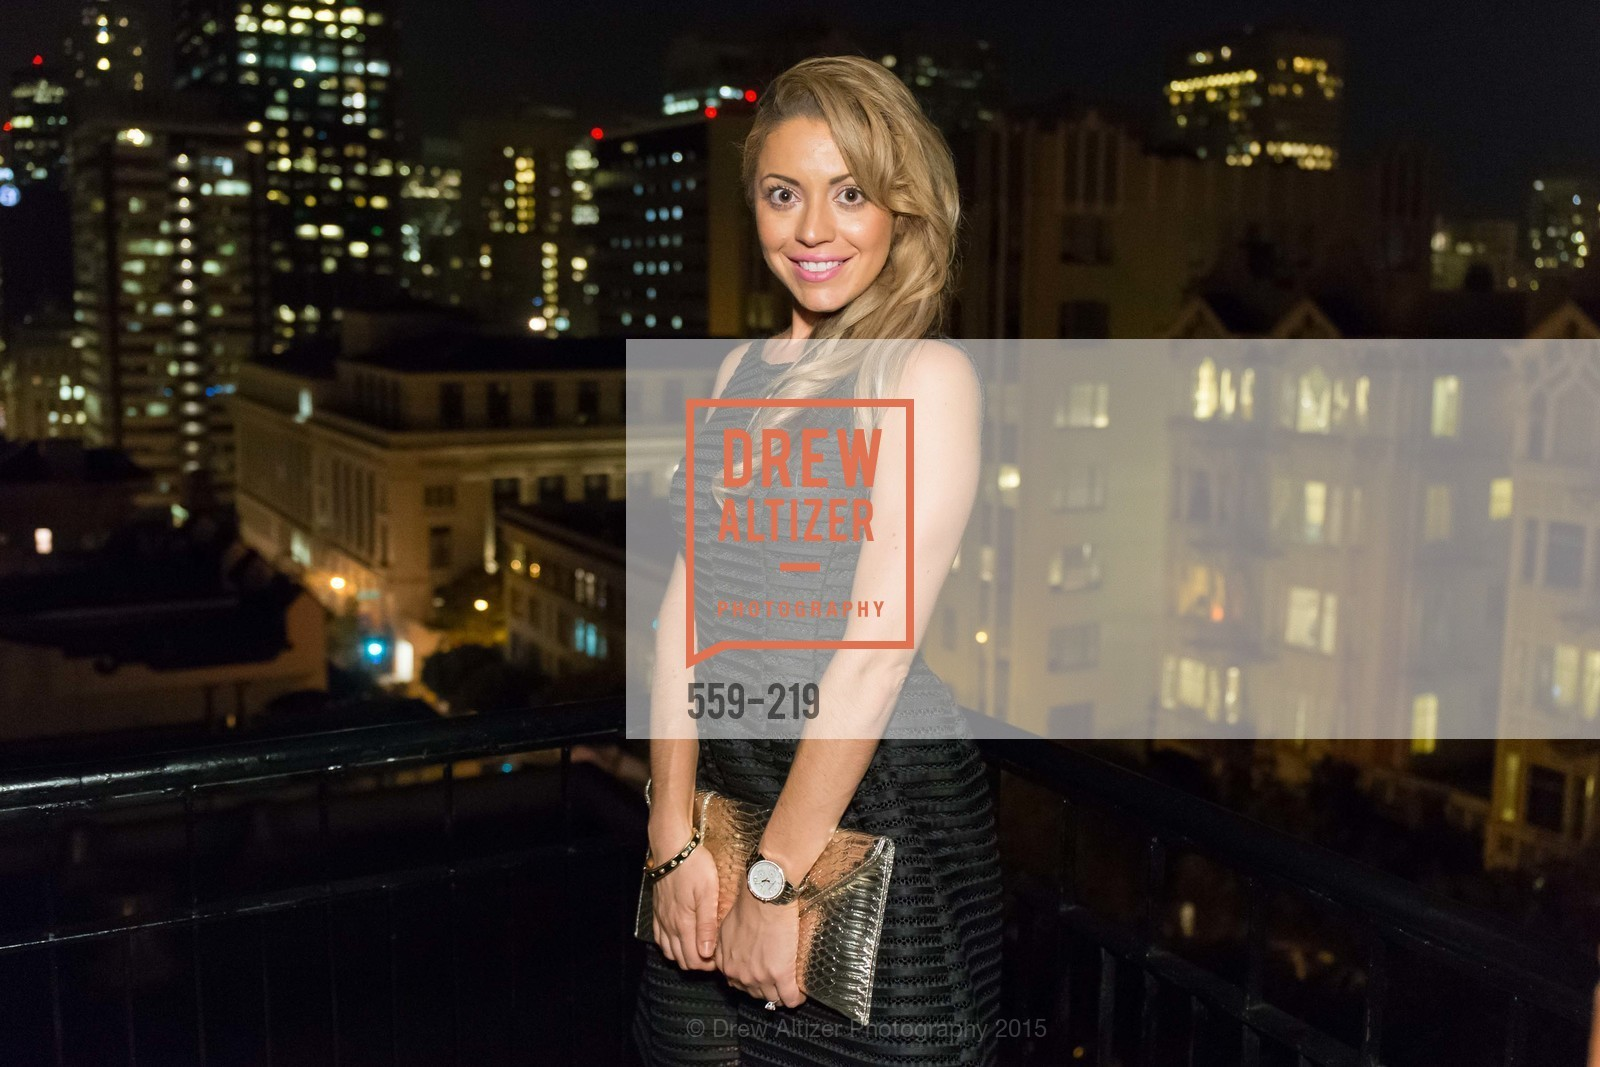 Jessica Smith, Champagne Reception & Screening of Million Dollar Listing San Francisco, University Club. 800 Powell St, August 5th, 2015,Drew Altizer, Drew Altizer Photography, full-service event agency, private events, San Francisco photographer, photographer California